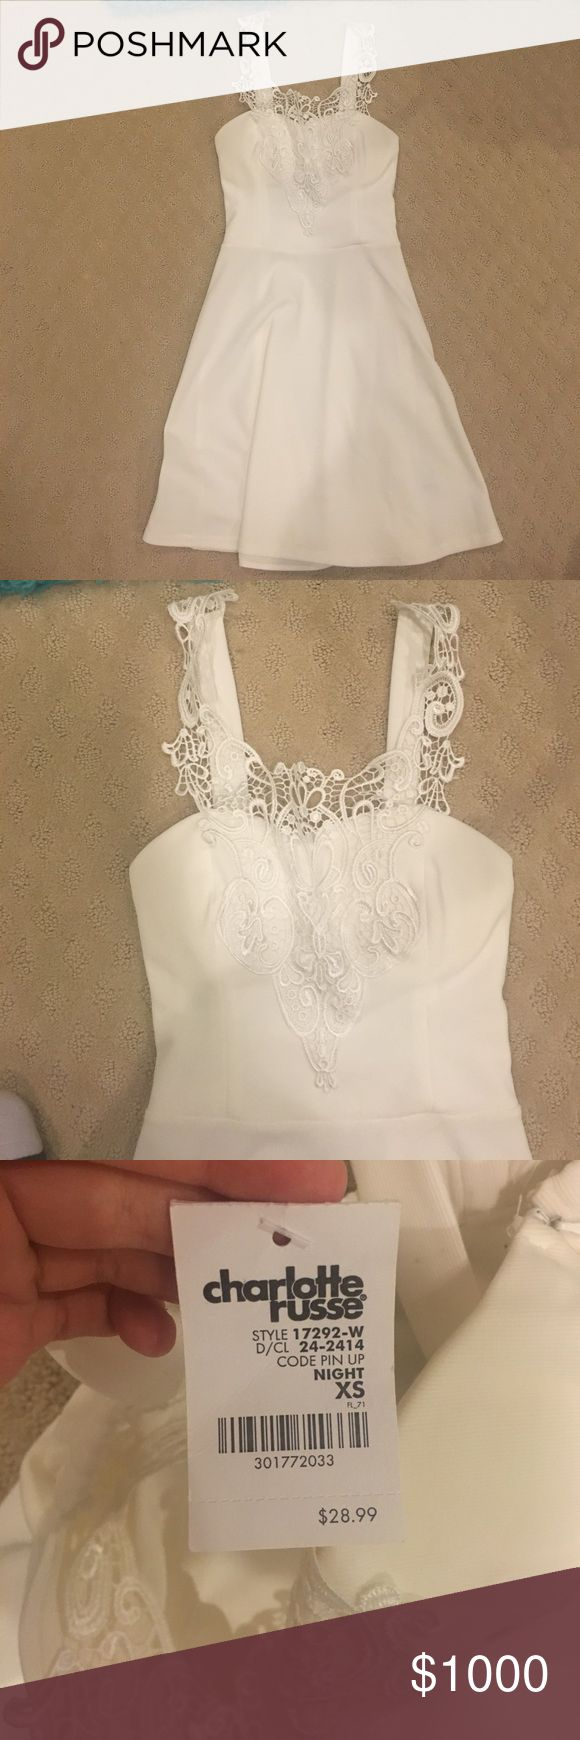 NWT Charlotte Russe White Summer Dress Beautiful dress! Was small on me which made it appear see through. May want to wear a tight white skirt under it or shorts. Should work fine if you wear the correct size. Charlotte Russe Dresses Mini